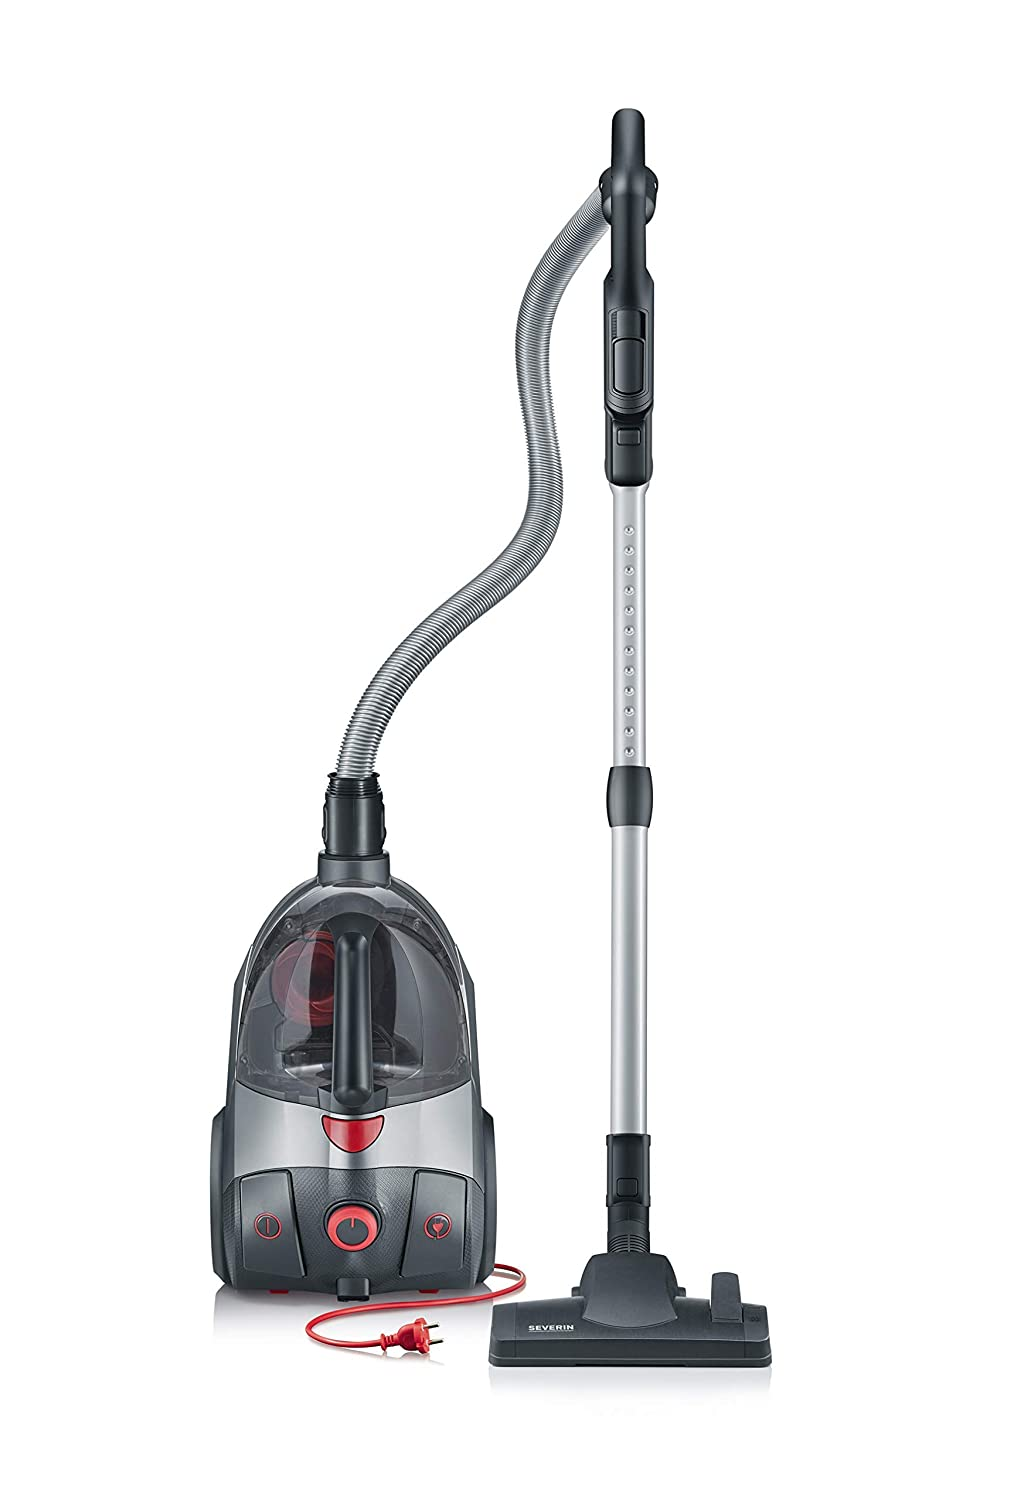 Severin S'Power Extreme Bagless Canister Vacuum Cleaner, Midnight Black (Renewed)